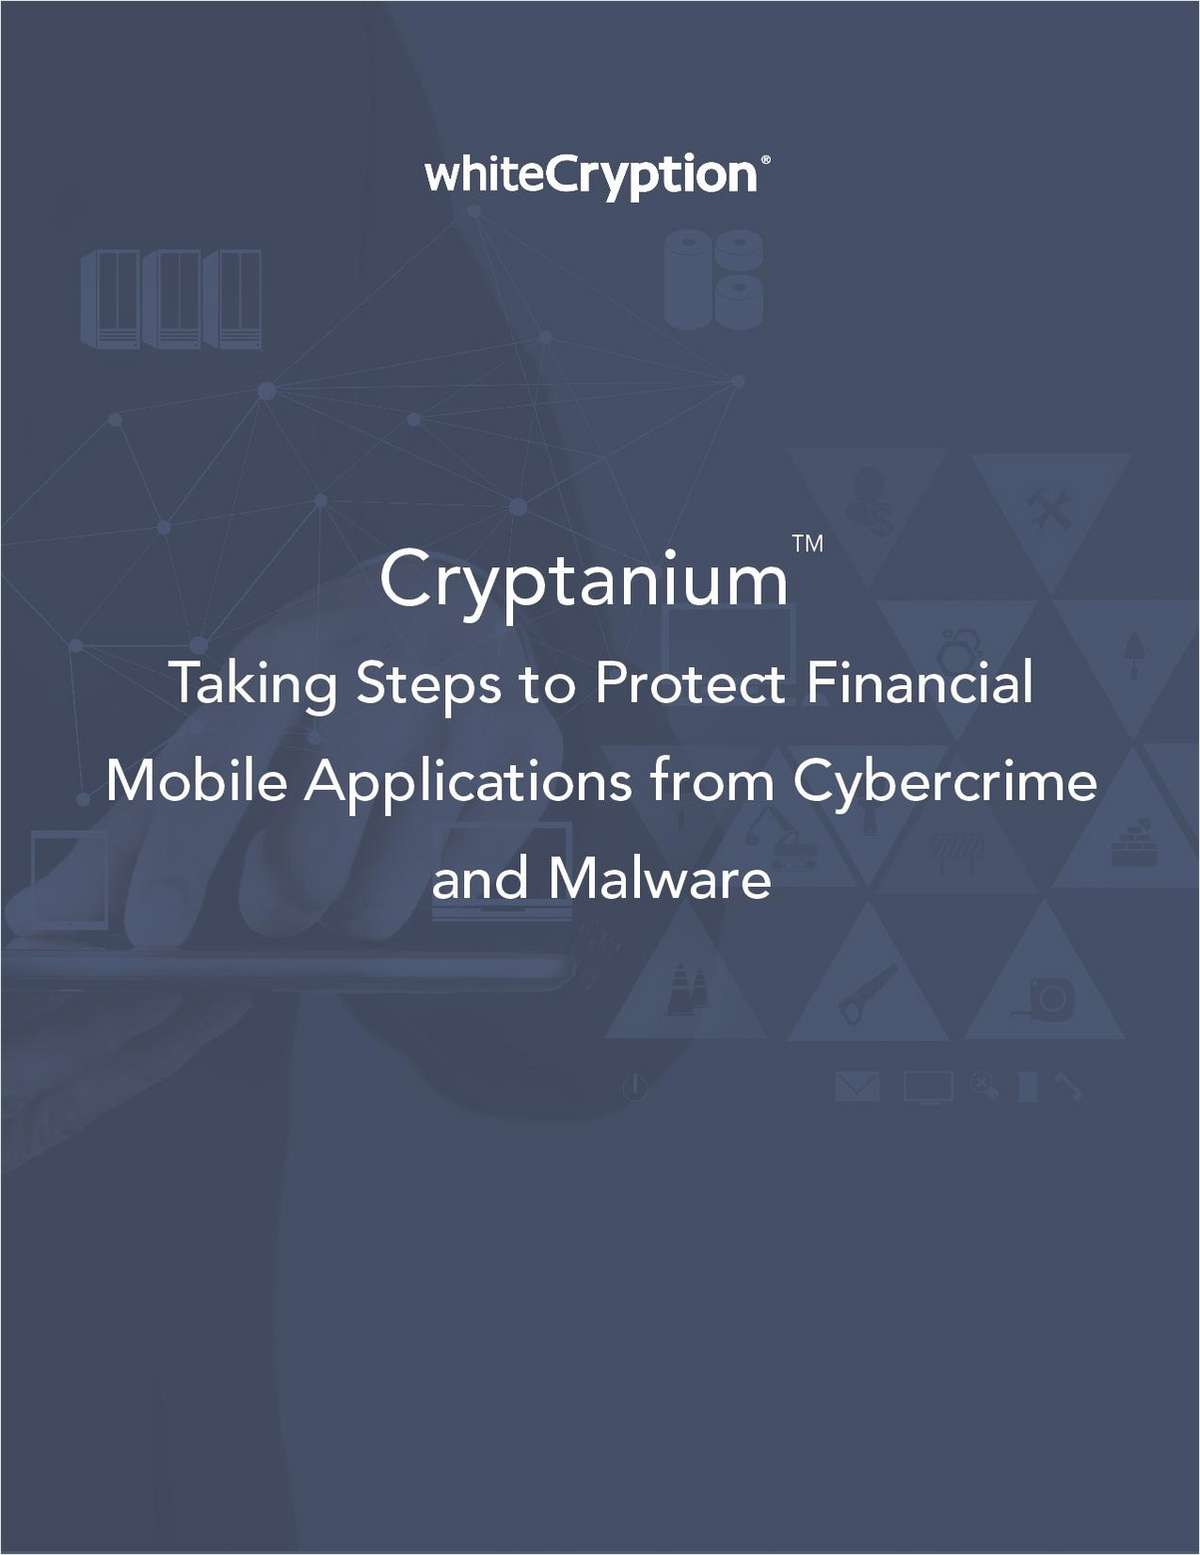 Taking Steps to Protect Financial Mobile Applications from Cybercrime and Malware